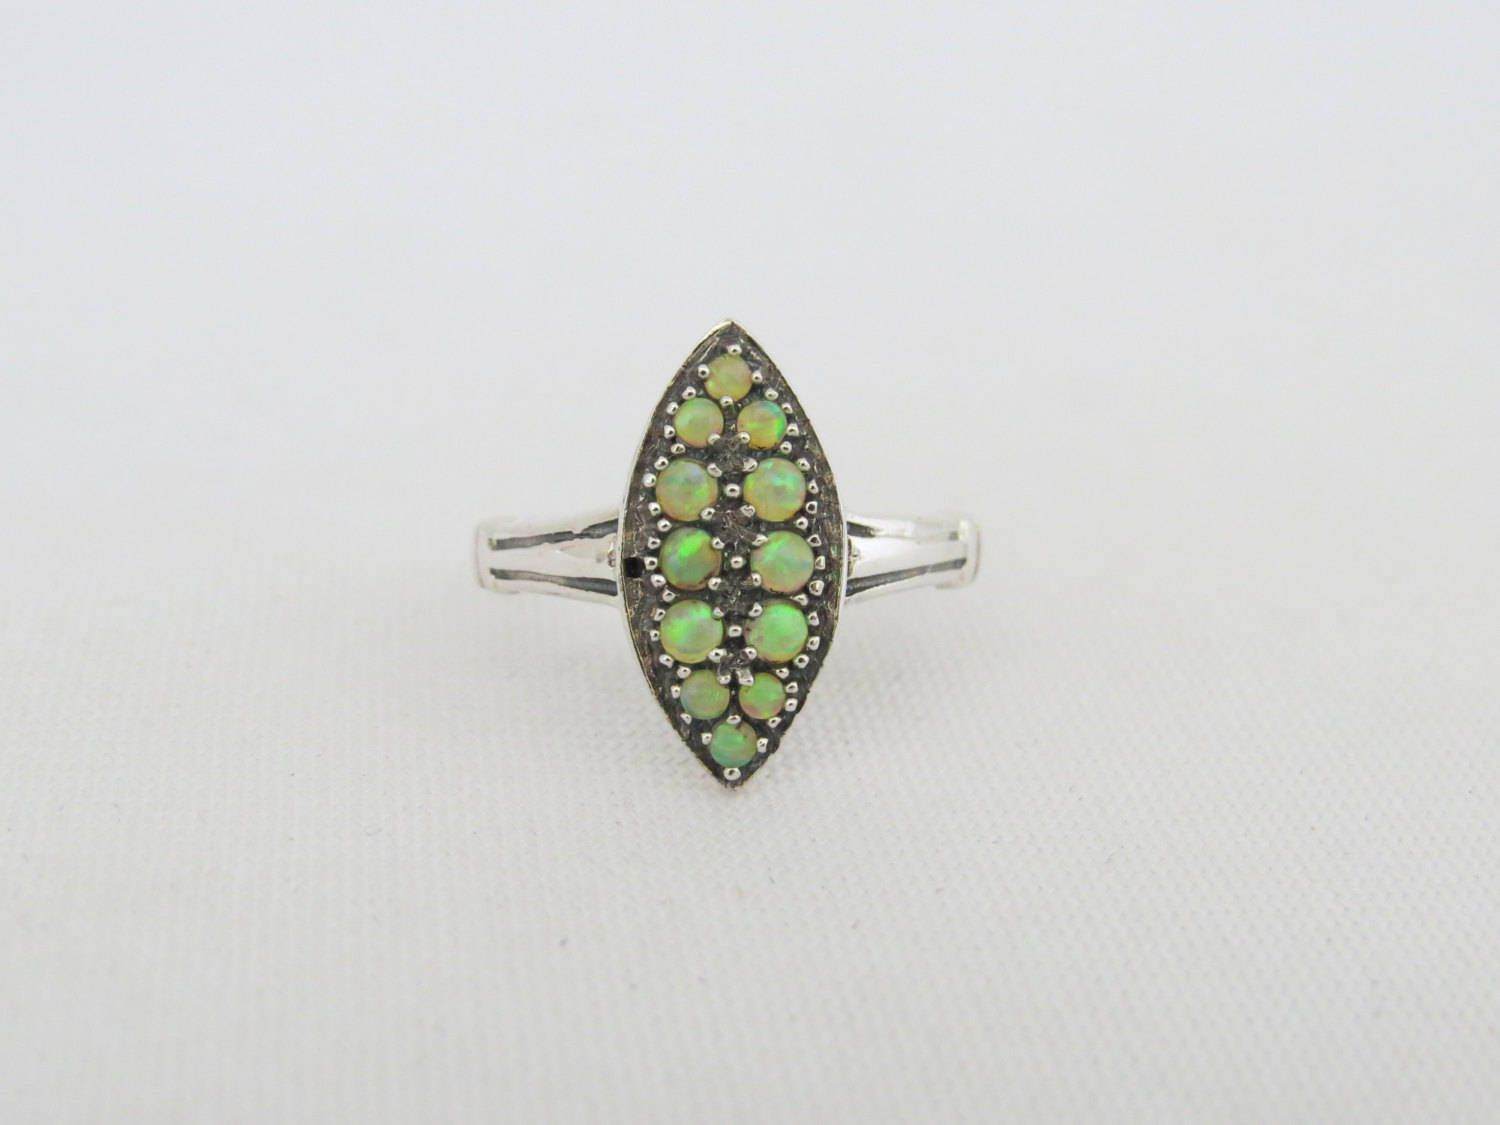 Vintage Sterling Silver Green Opal Marquise Ring Size 8 by JewelryEmpire14 on Etsy